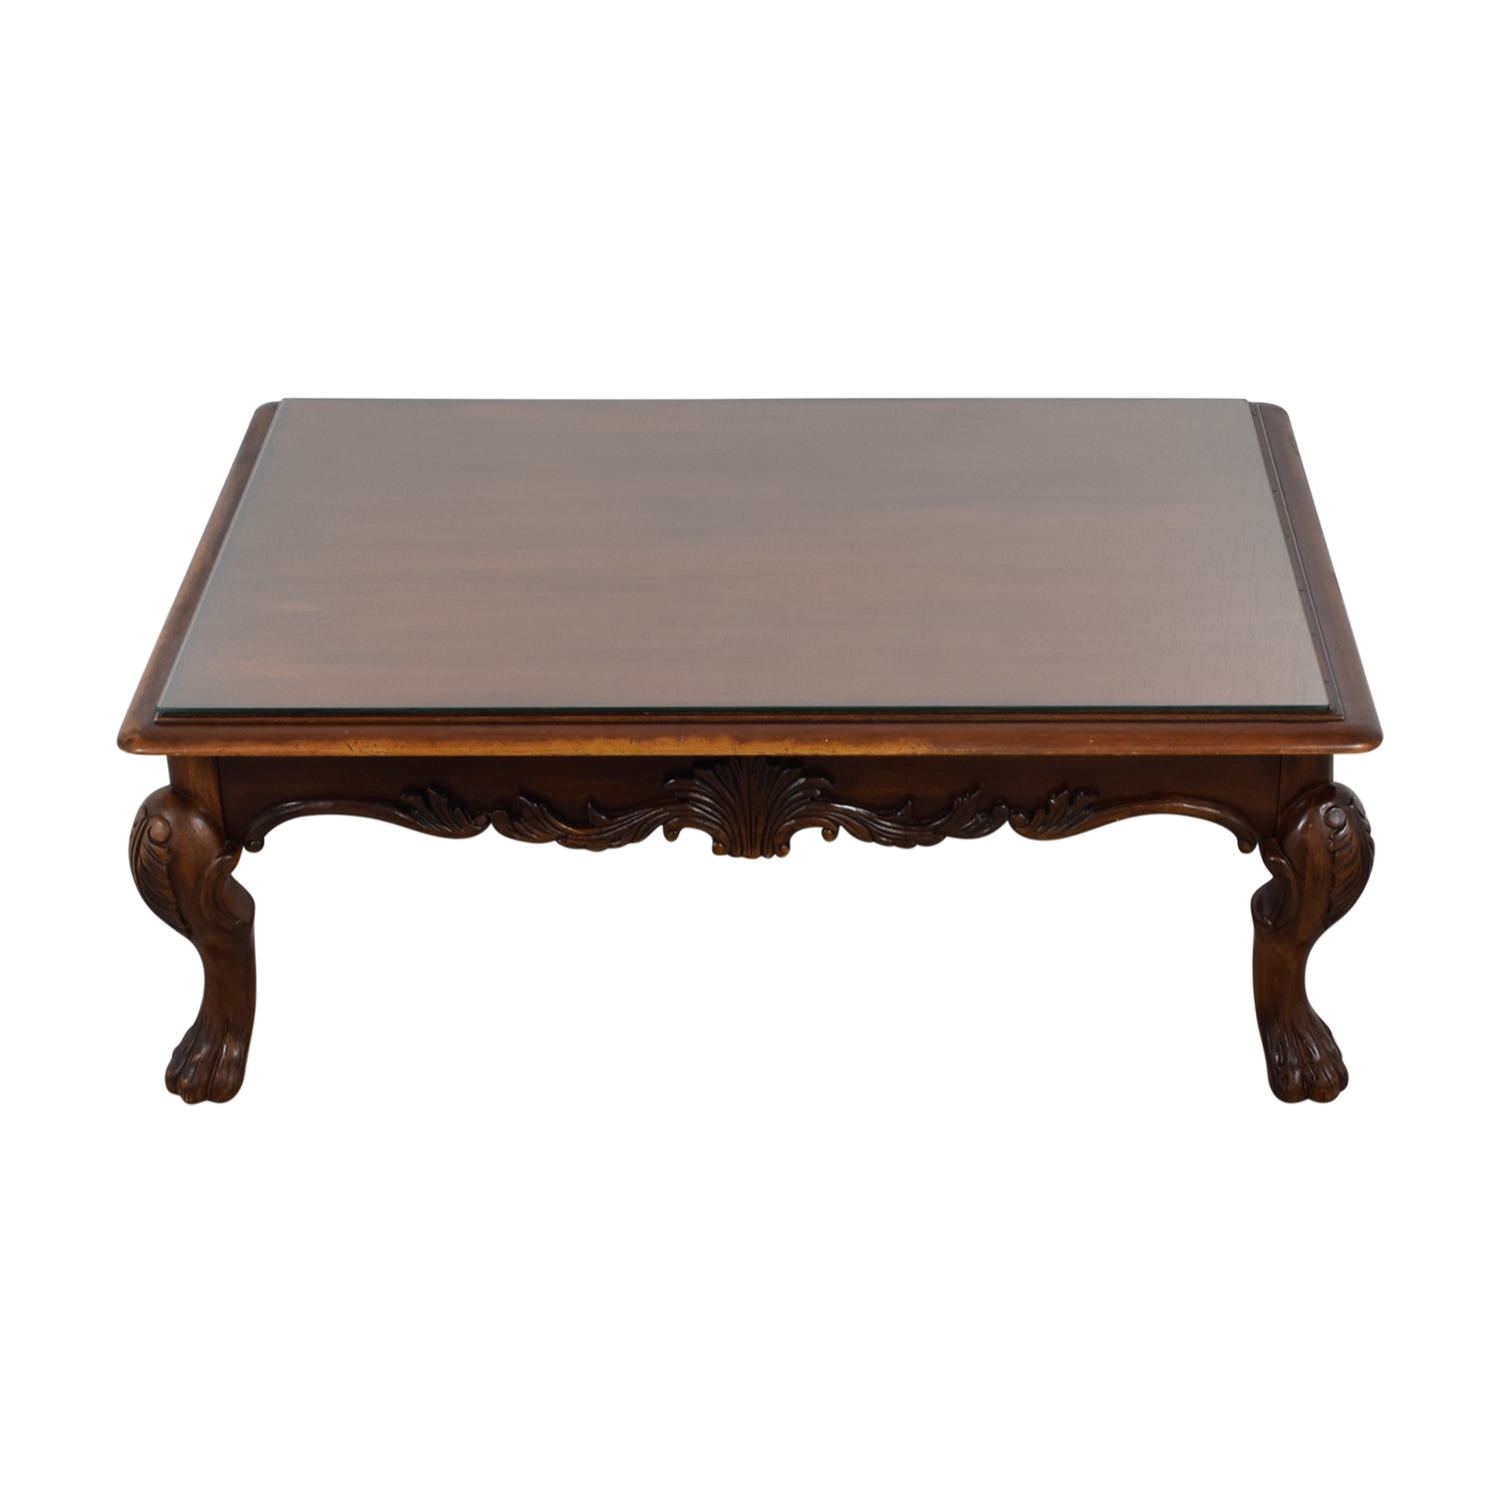 ... Rectangular Carved Wood Coffee Table With Glass Top Used ...